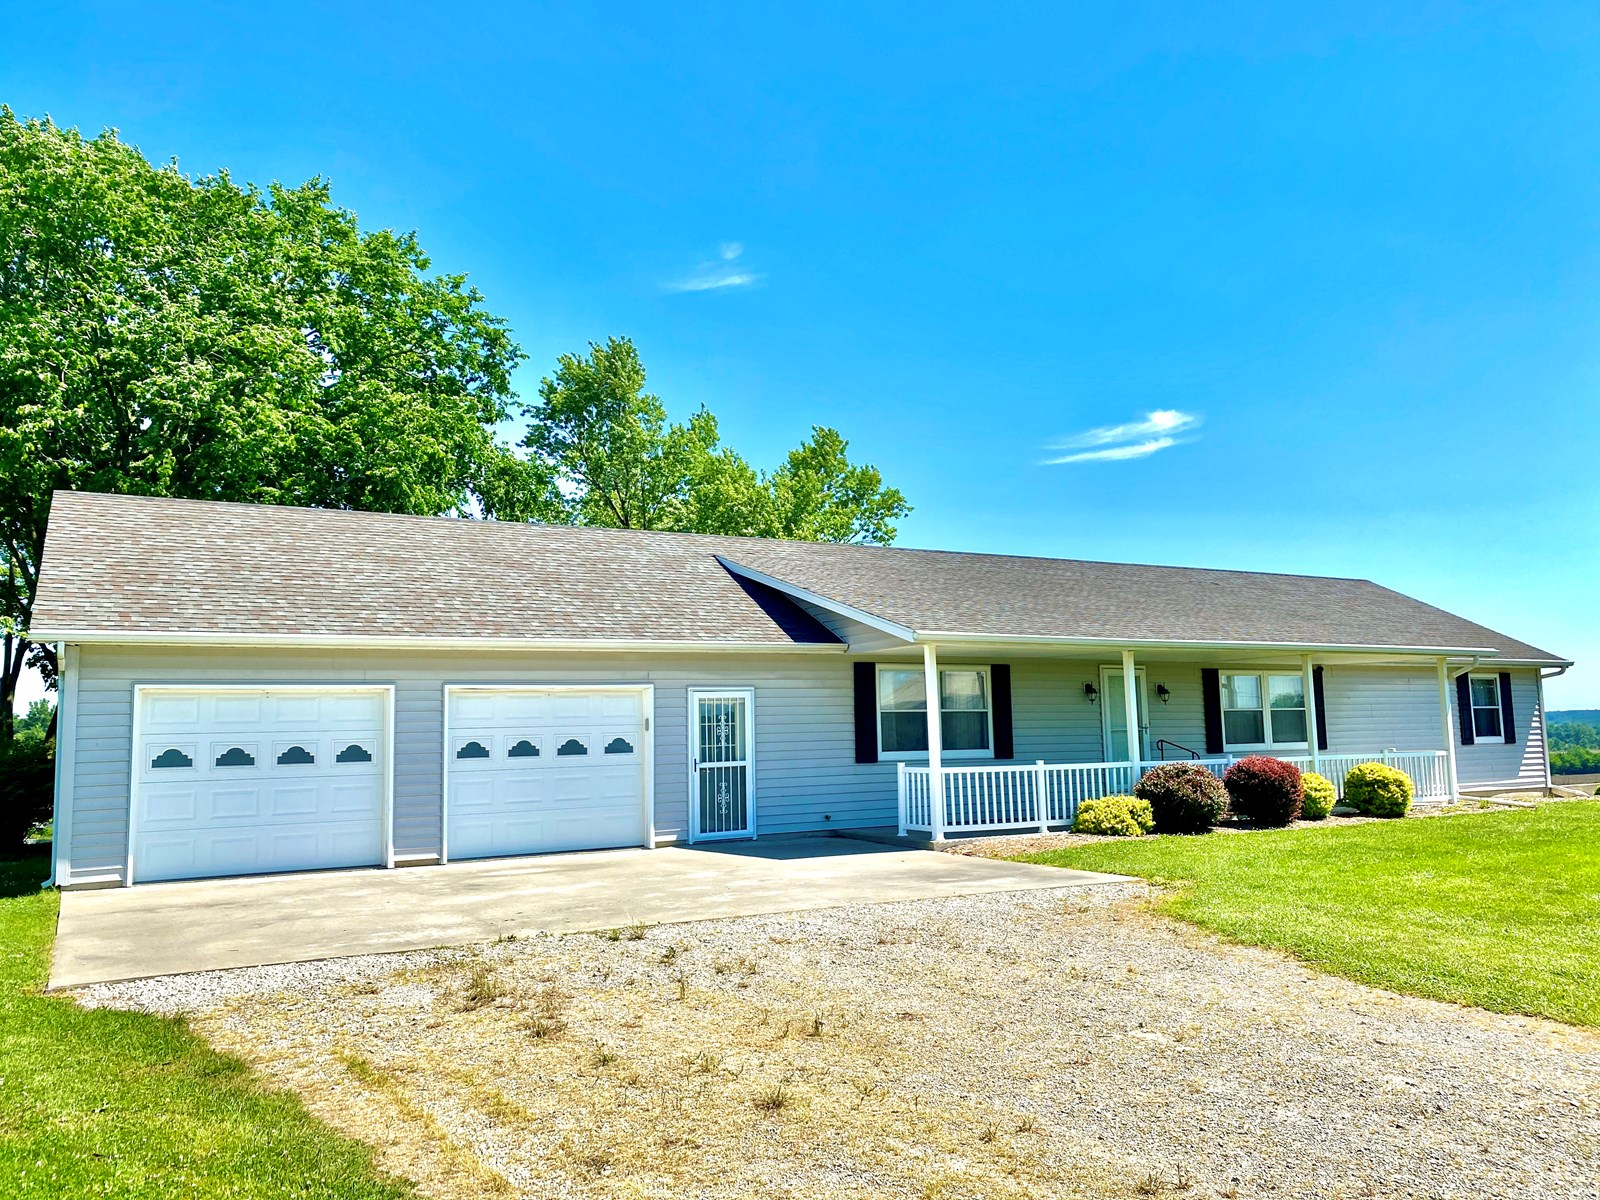 Country Home & Buildings on Small Acreage in Mercer County